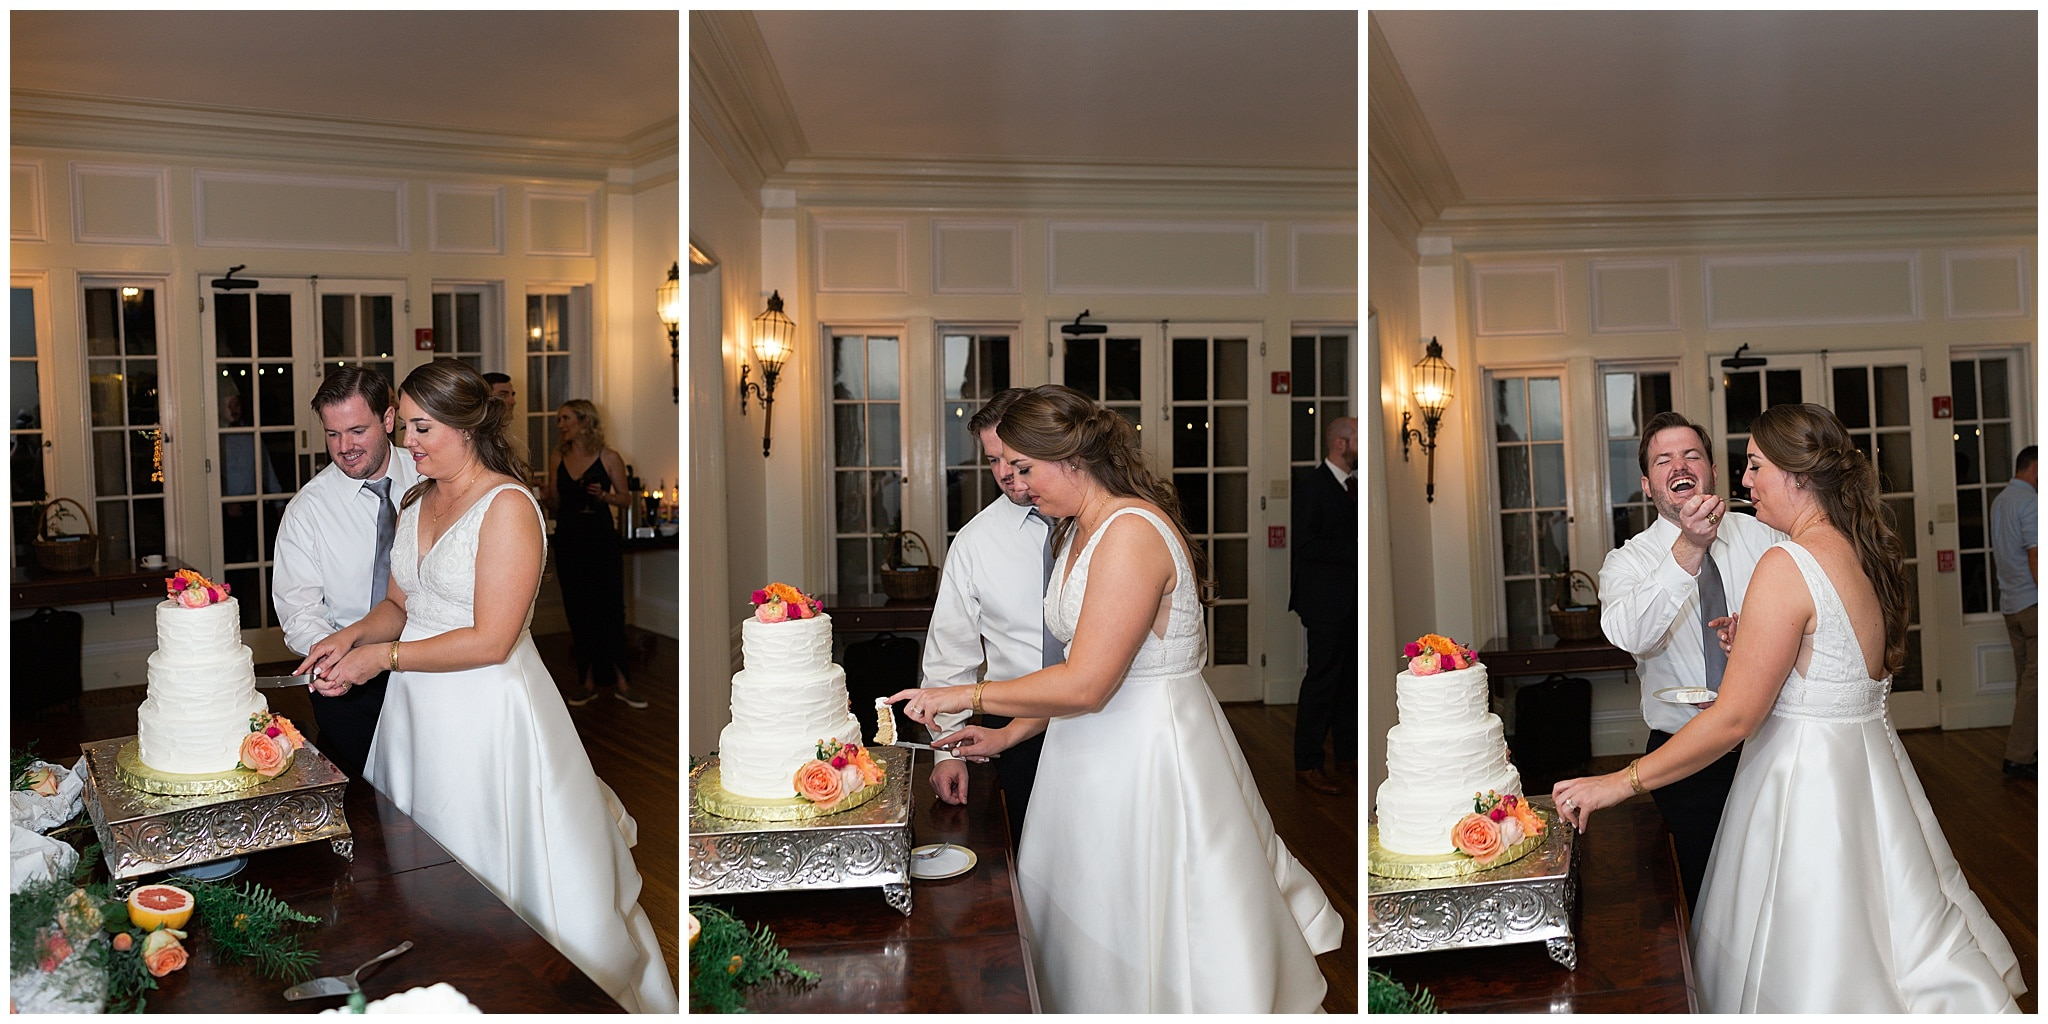 bride and groom cut wedding cake at Astin Mansion in Bryan Texas by Swish and Click Photography